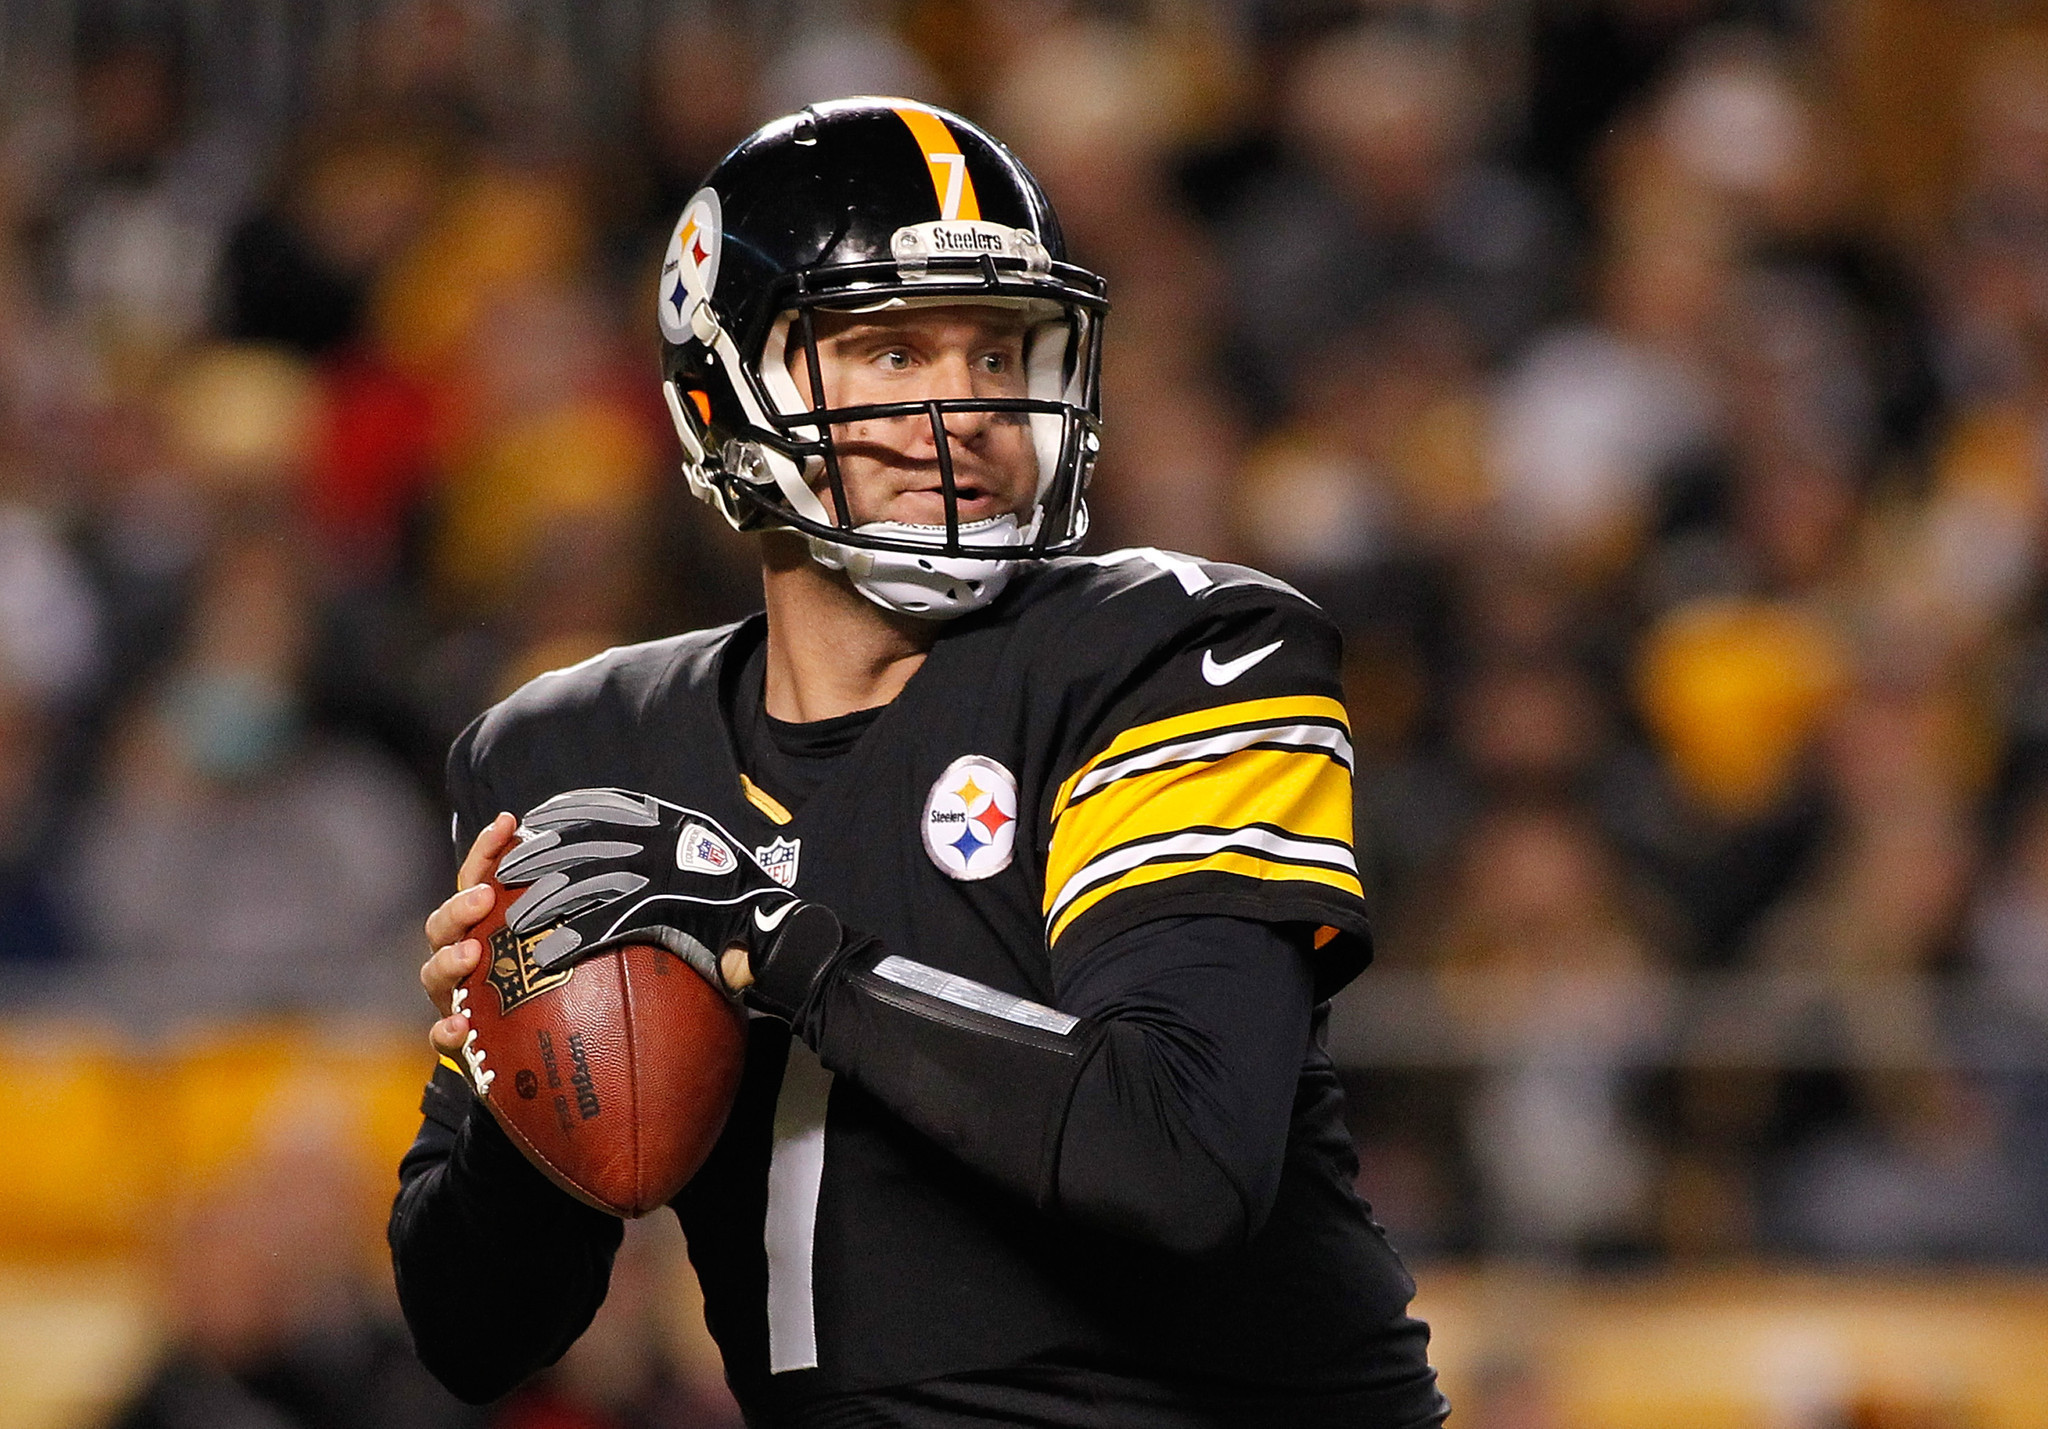 Steelers sign Ben Roethlisberger to five year contract extension